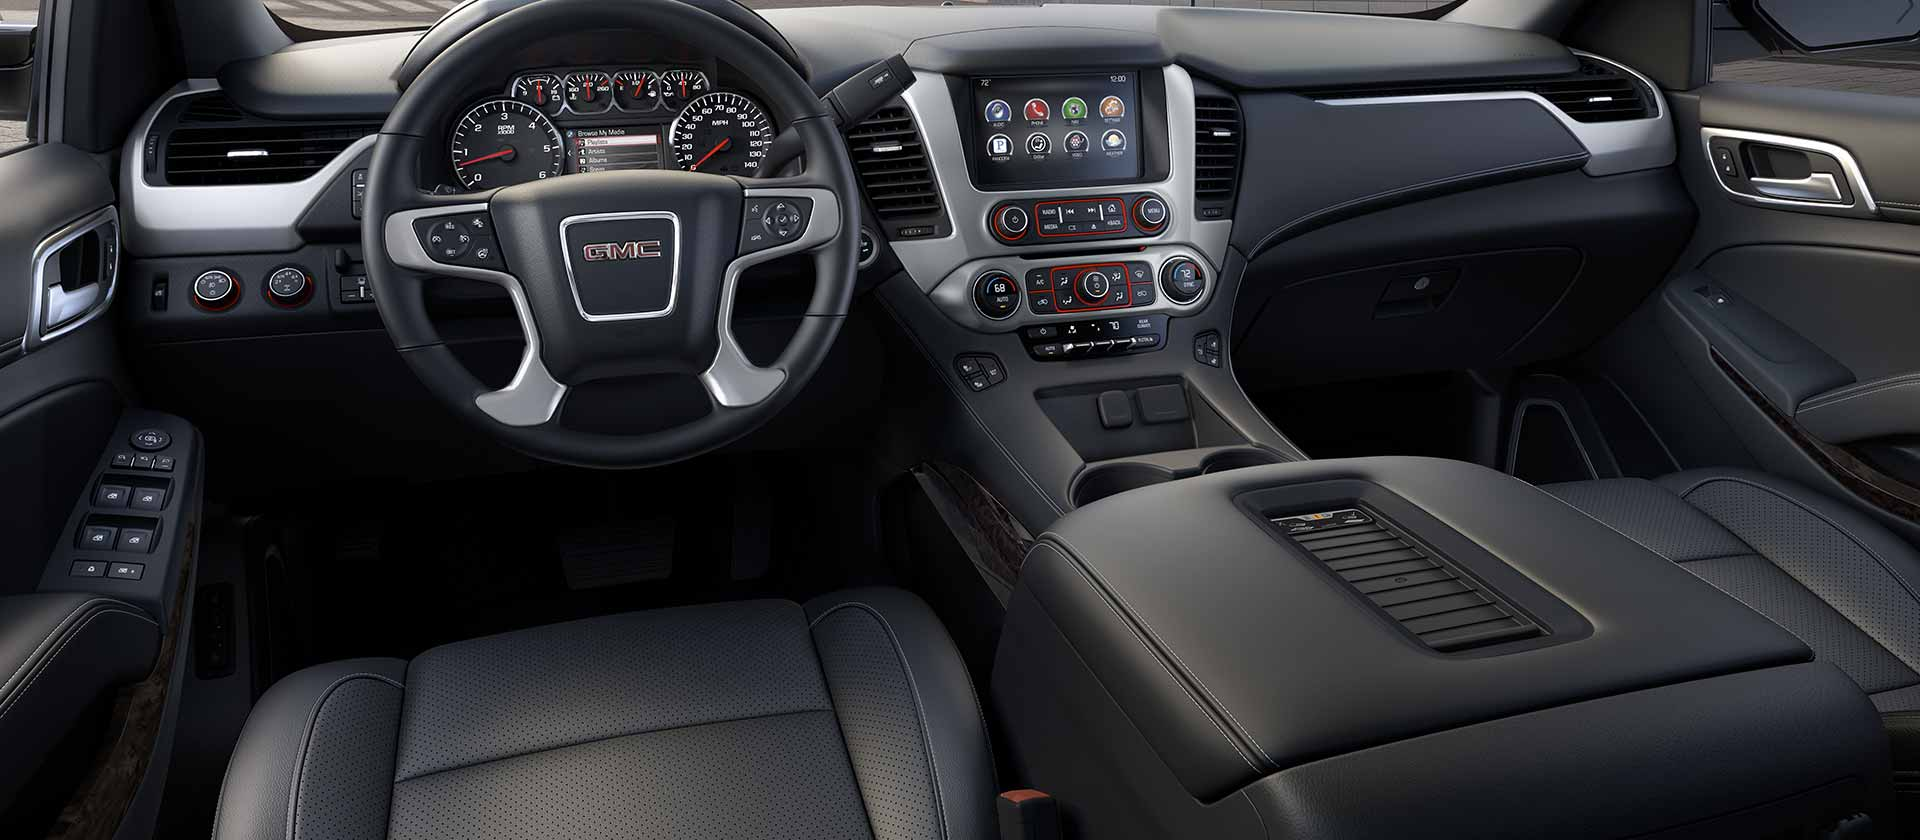 2015 GMC Yukon XL Driver Seat and Dashboard